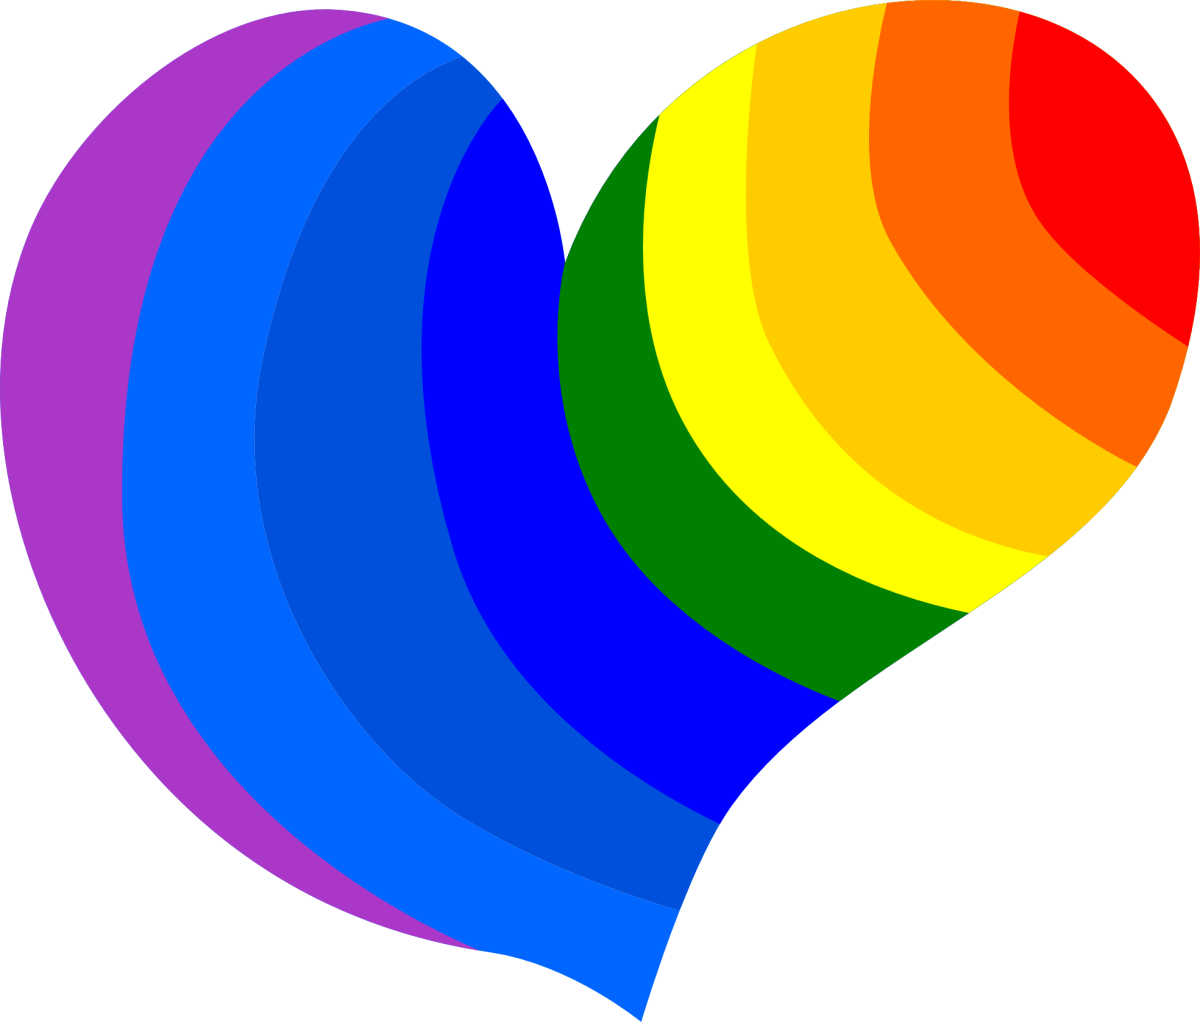 Rainbow Heart Design